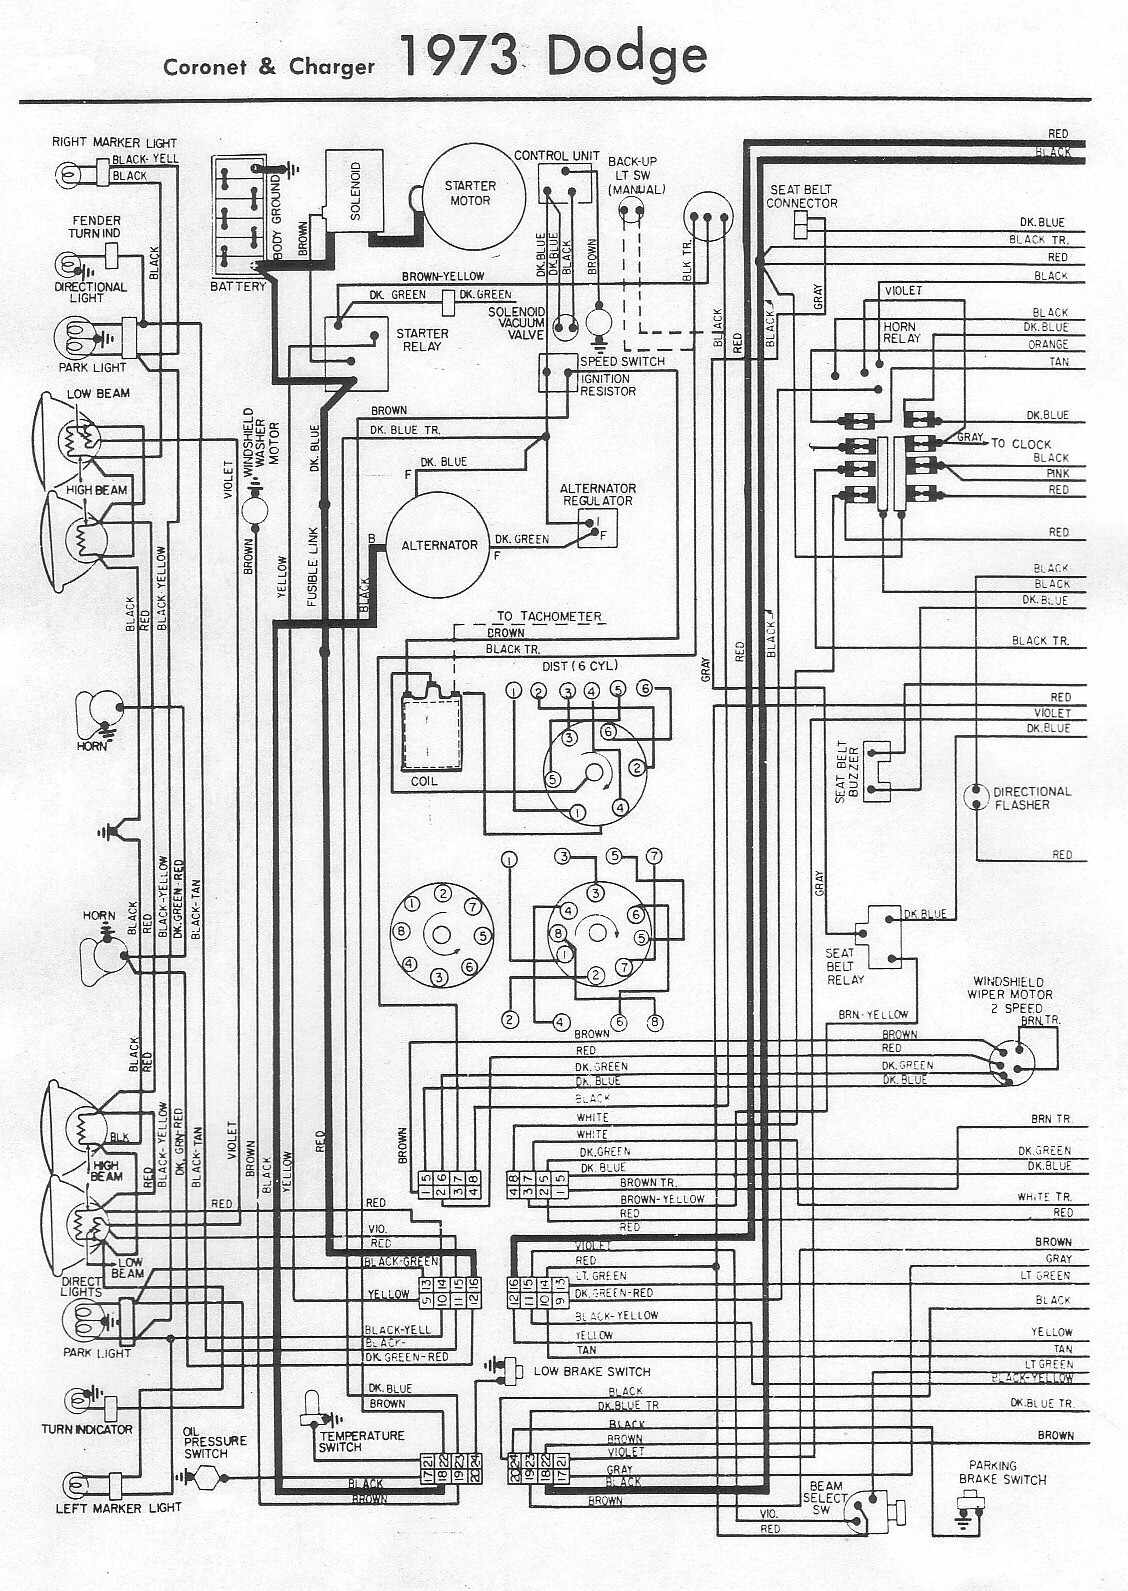 1972 dodge charger wiring diagram wiring diagram data rh 13 1 randstad realestate nl 1974 dodge charger wiring harness 1974 dodge dart swinger wiring diagram